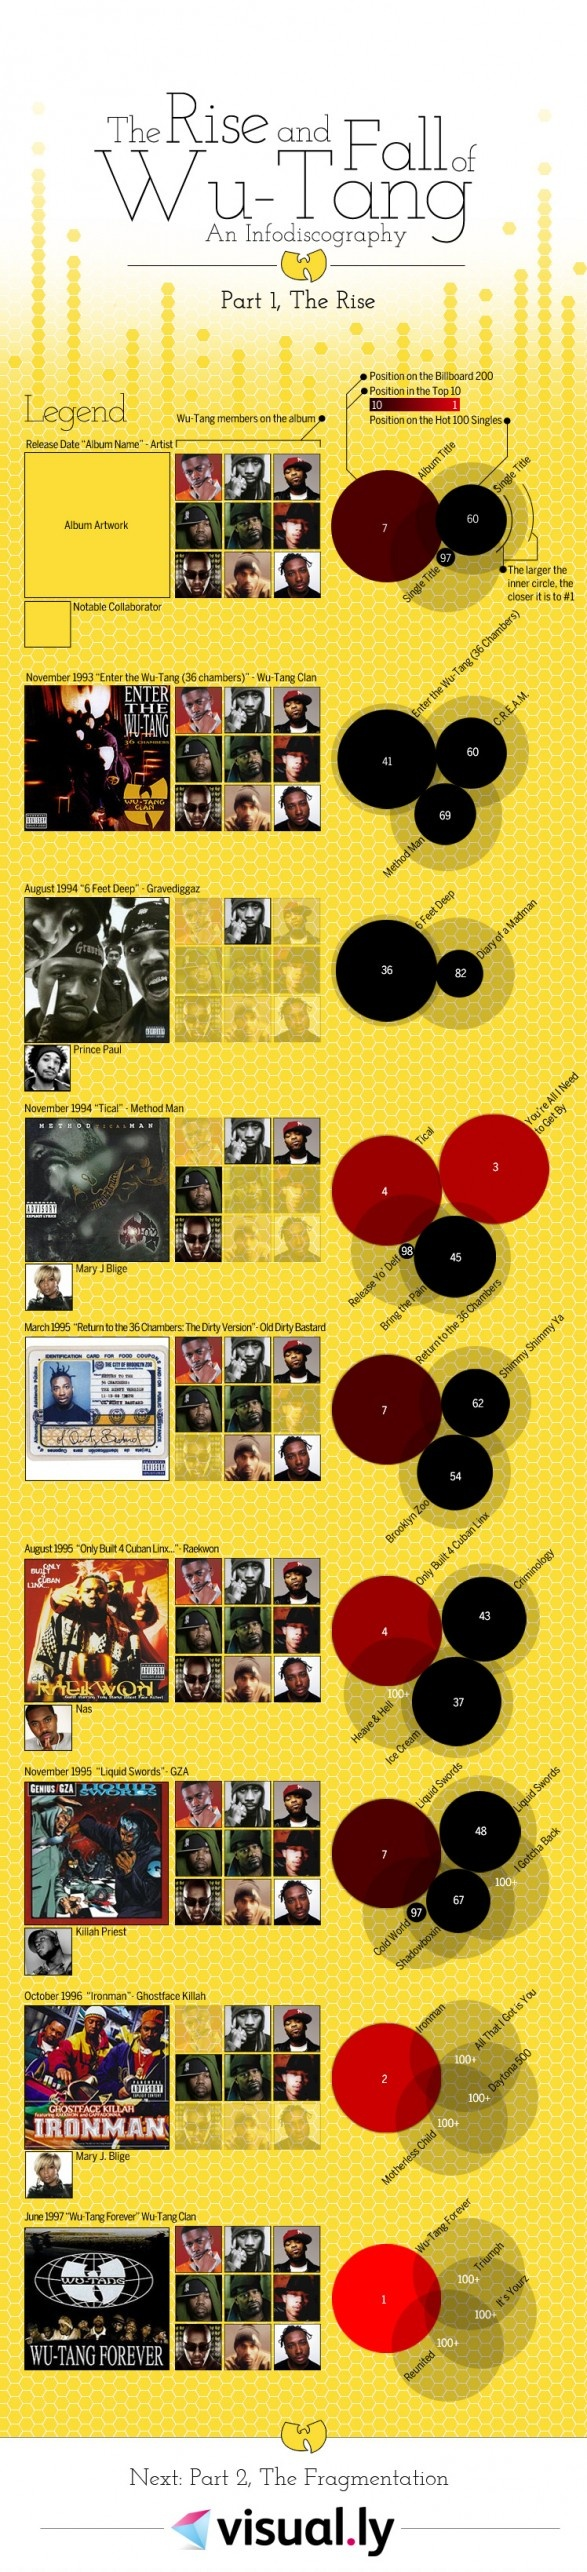 This infographic walks you though Wu-Tang's record... by the numbers. In Part 1: The Rise, you can track record performance through June 1997